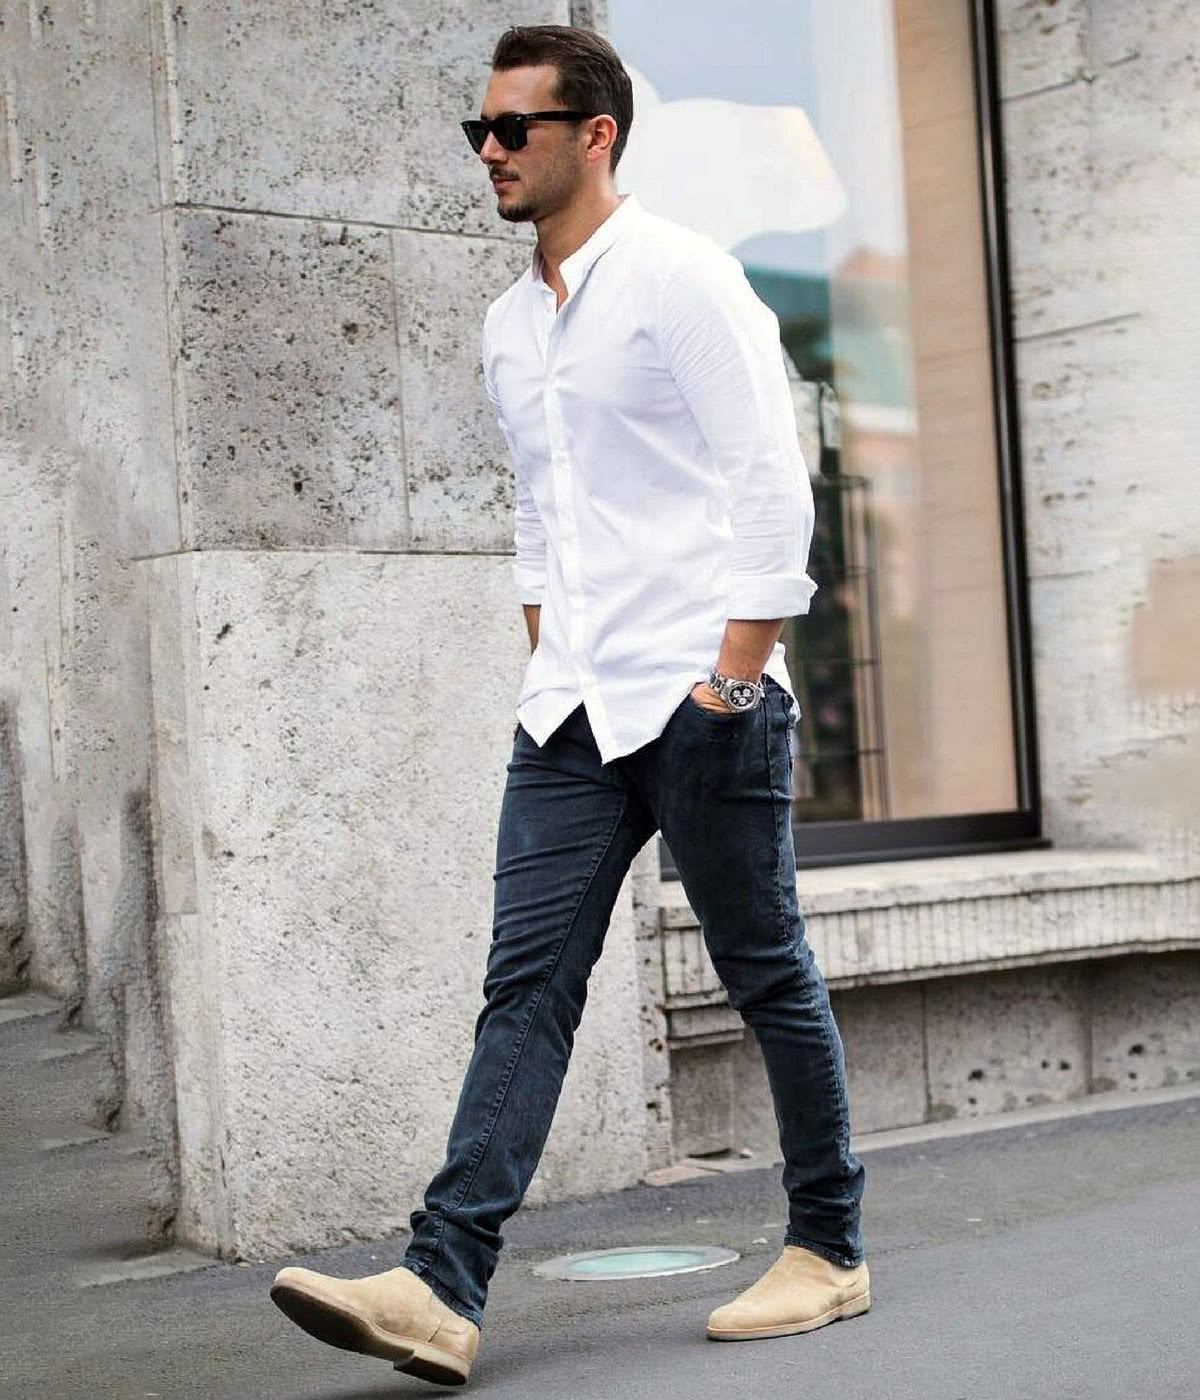 Casual dress code men style summer , Luxe Digital